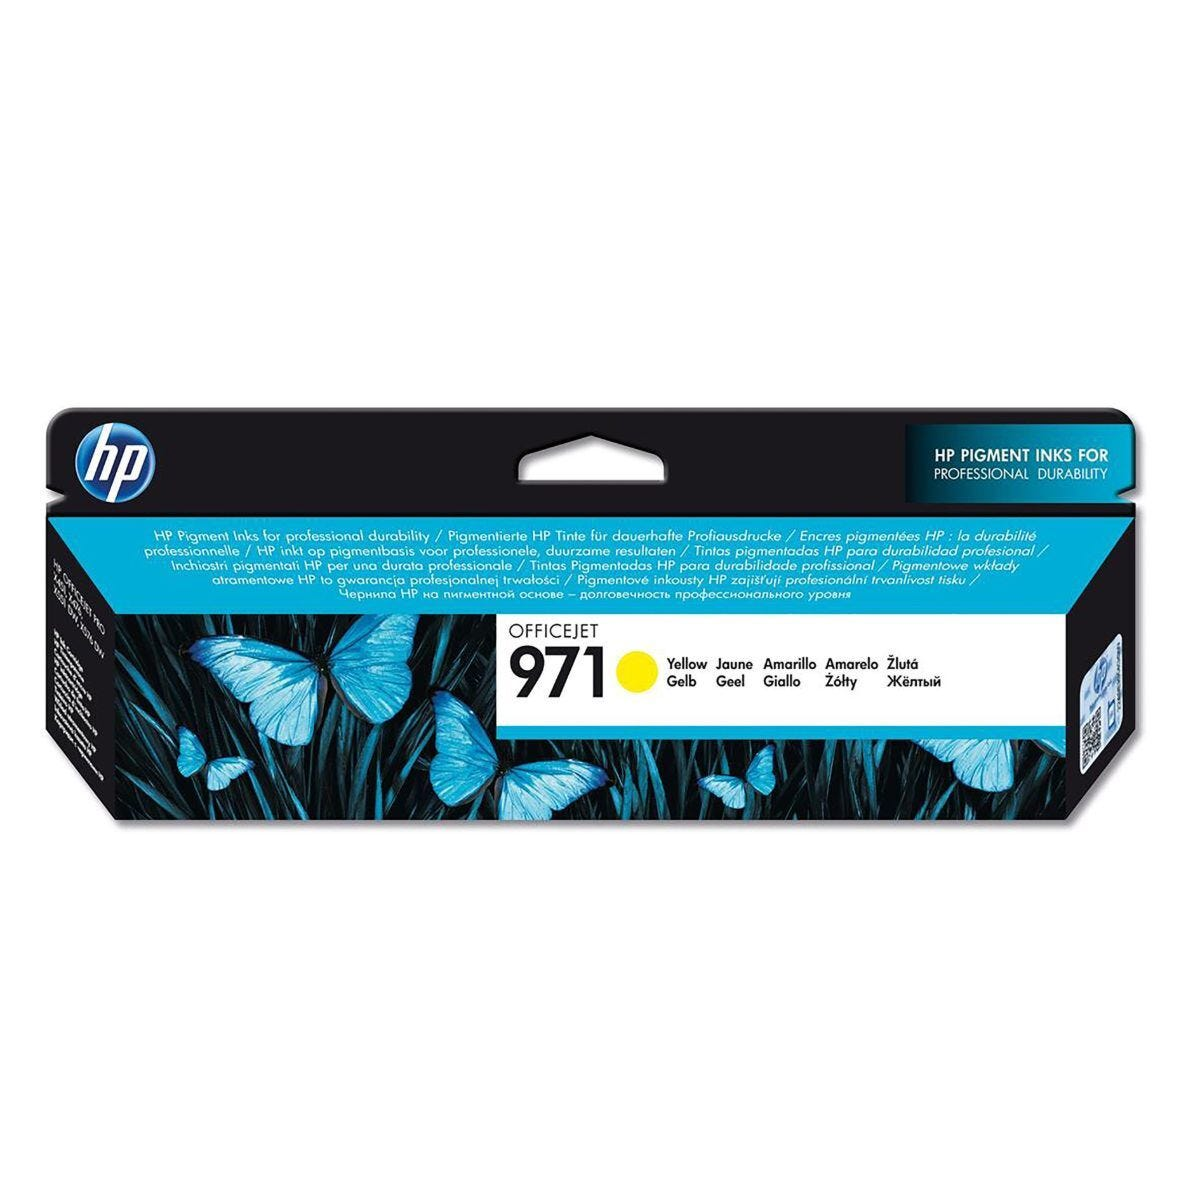 HP 971 Officejet Ink Cartridge Yellow CN624AE